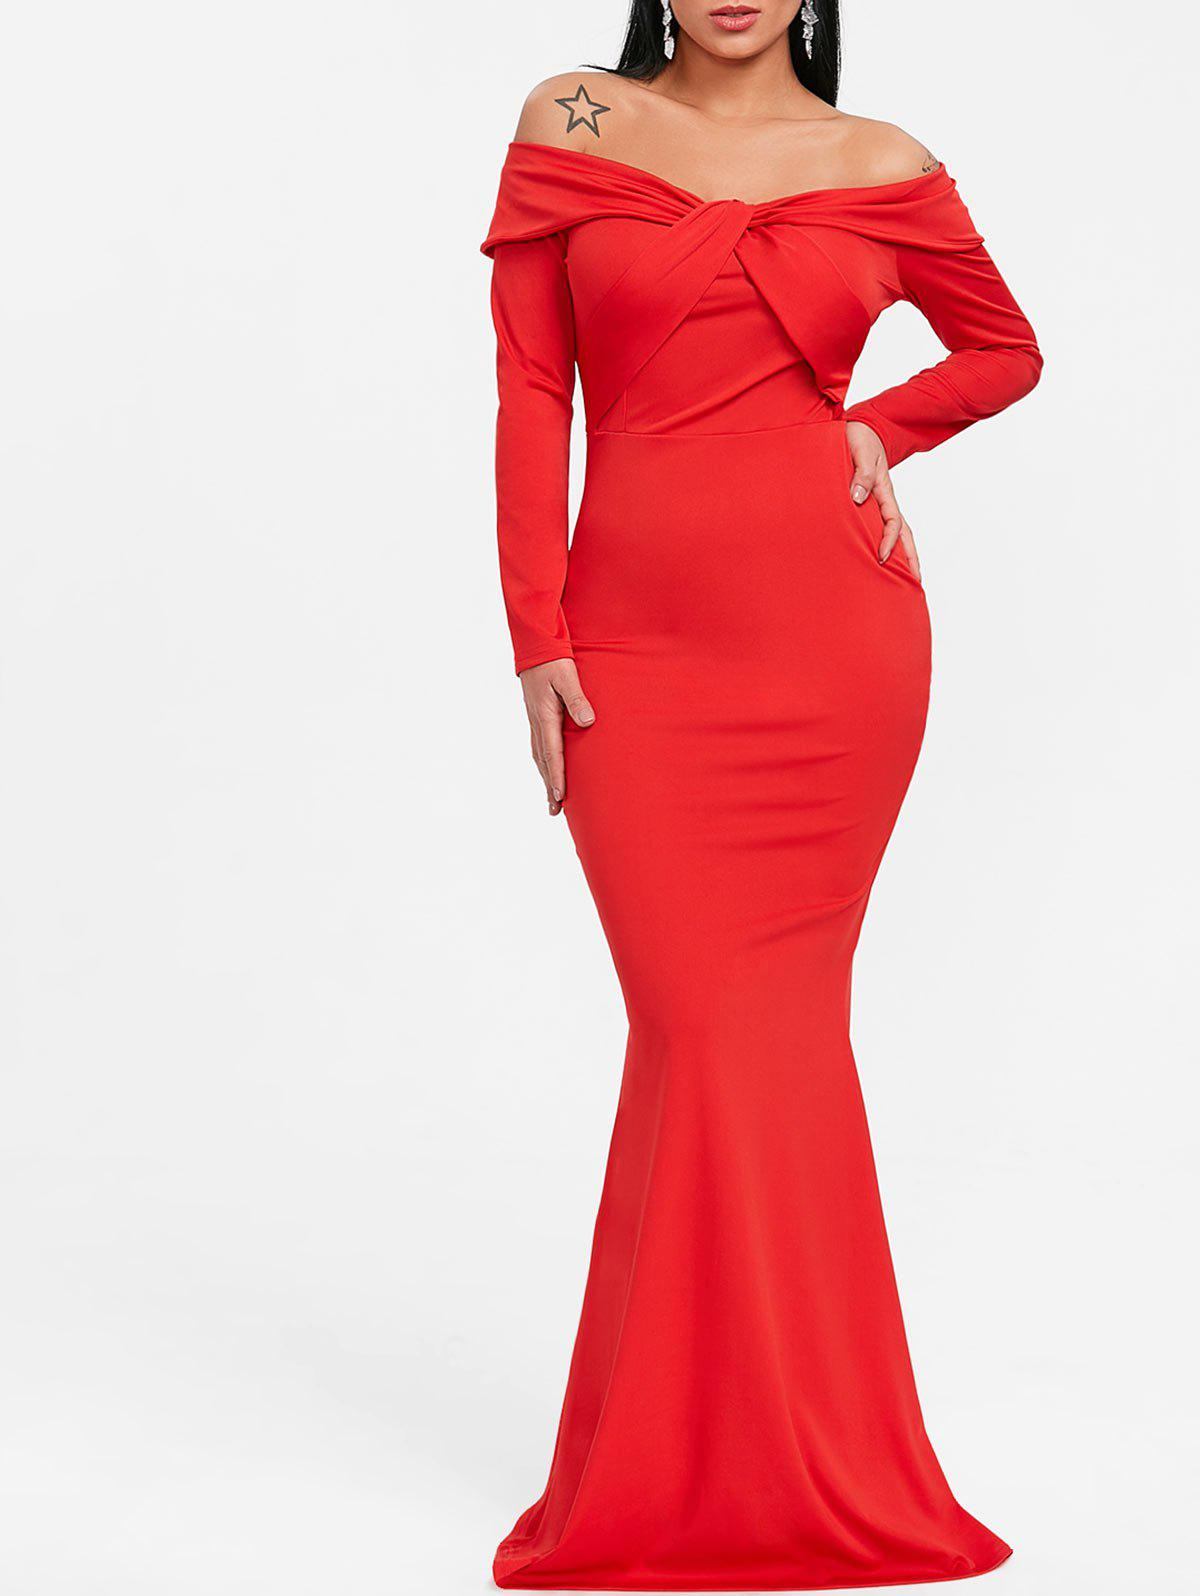 Off The Shoulder Twist Trumpet Prom Dress - RED 2XL